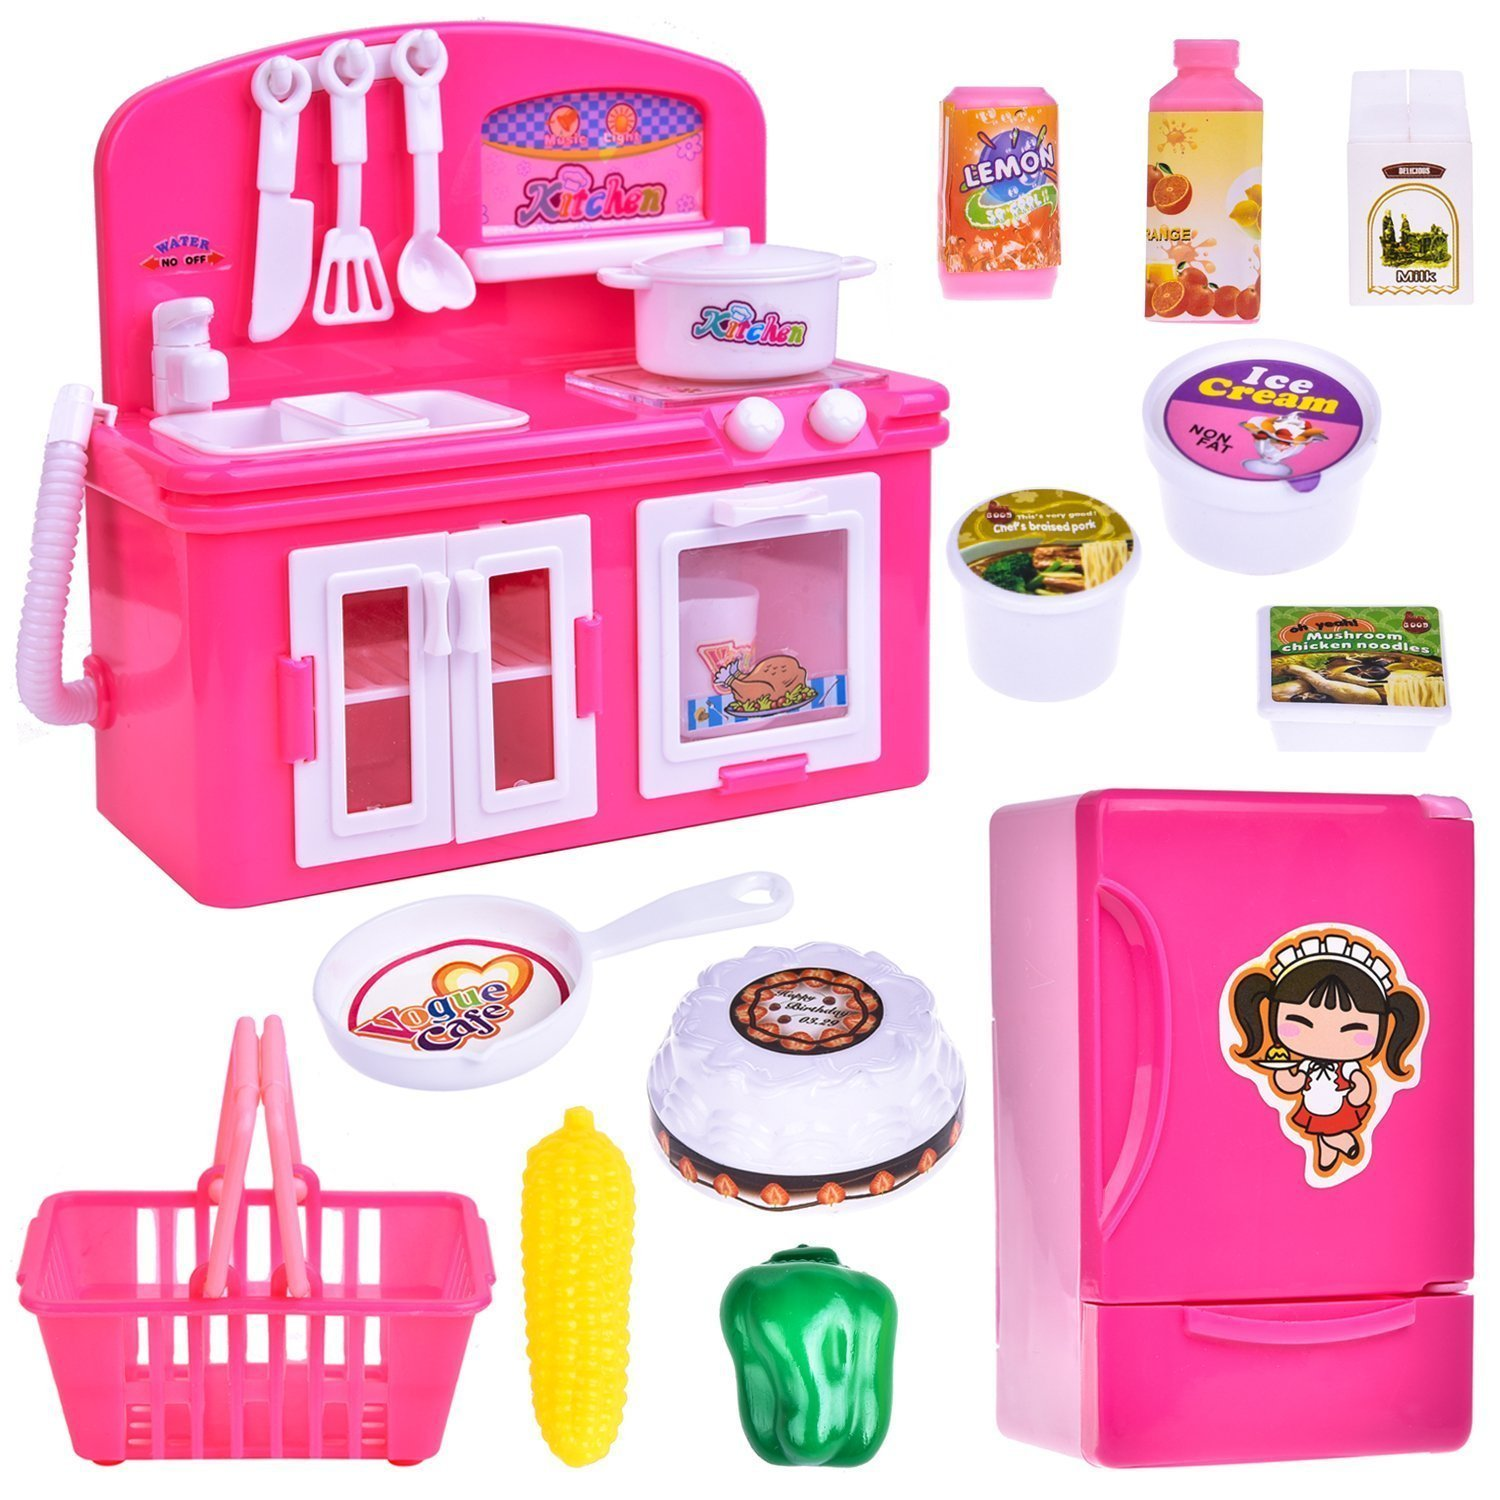 19 PCs Kitchen Appliance Toys with Kitchen, Refrigerator, Pot and Tableware, Pretend Play Set for Kids, Play Kitchen Appliance by FUN LITTLE TOYS (Image #8)